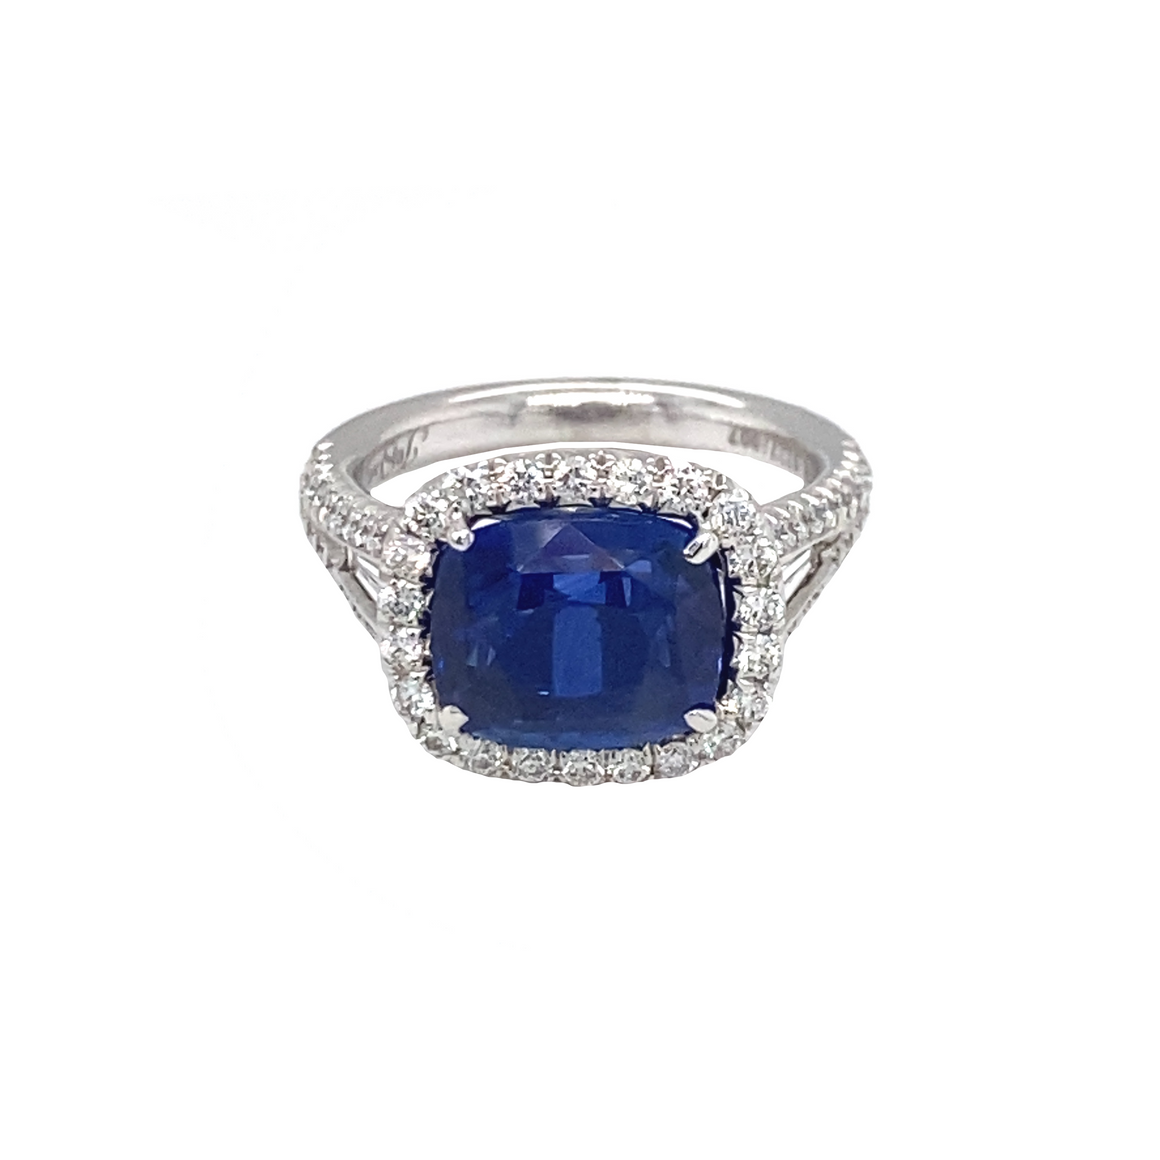 Cushion Blue Sapphire Ring - Lesley Ann Jewels